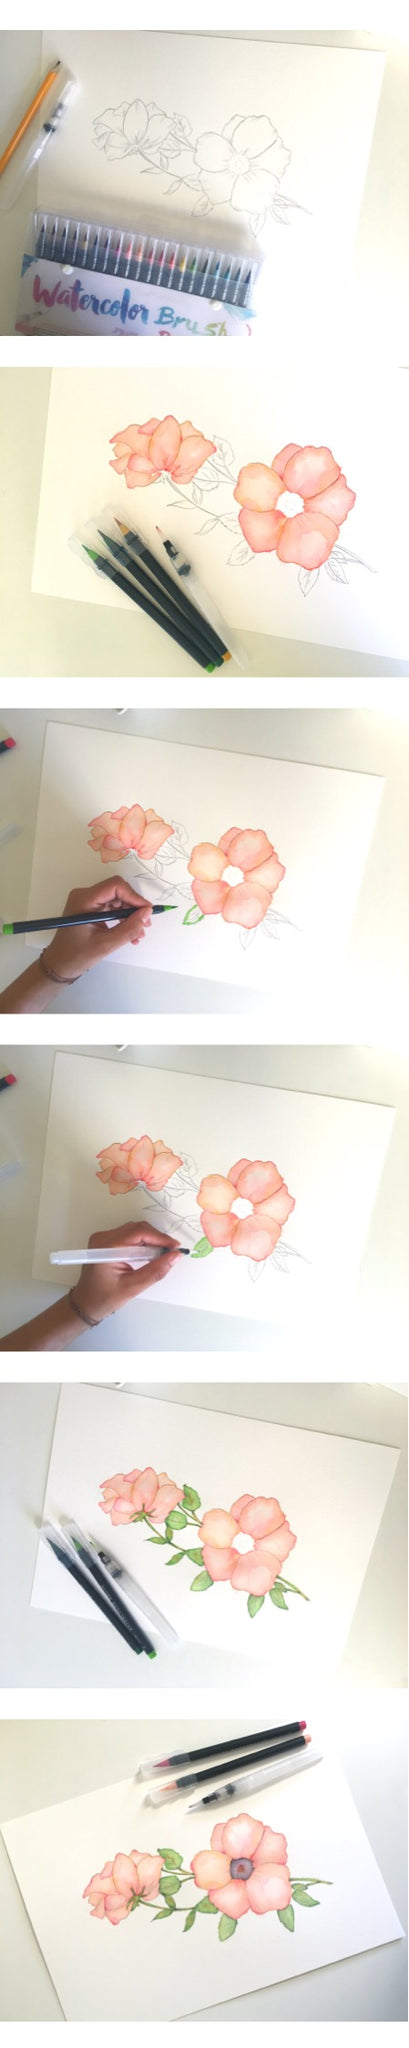 Pink Poppy watercoloring with brush markers step by step